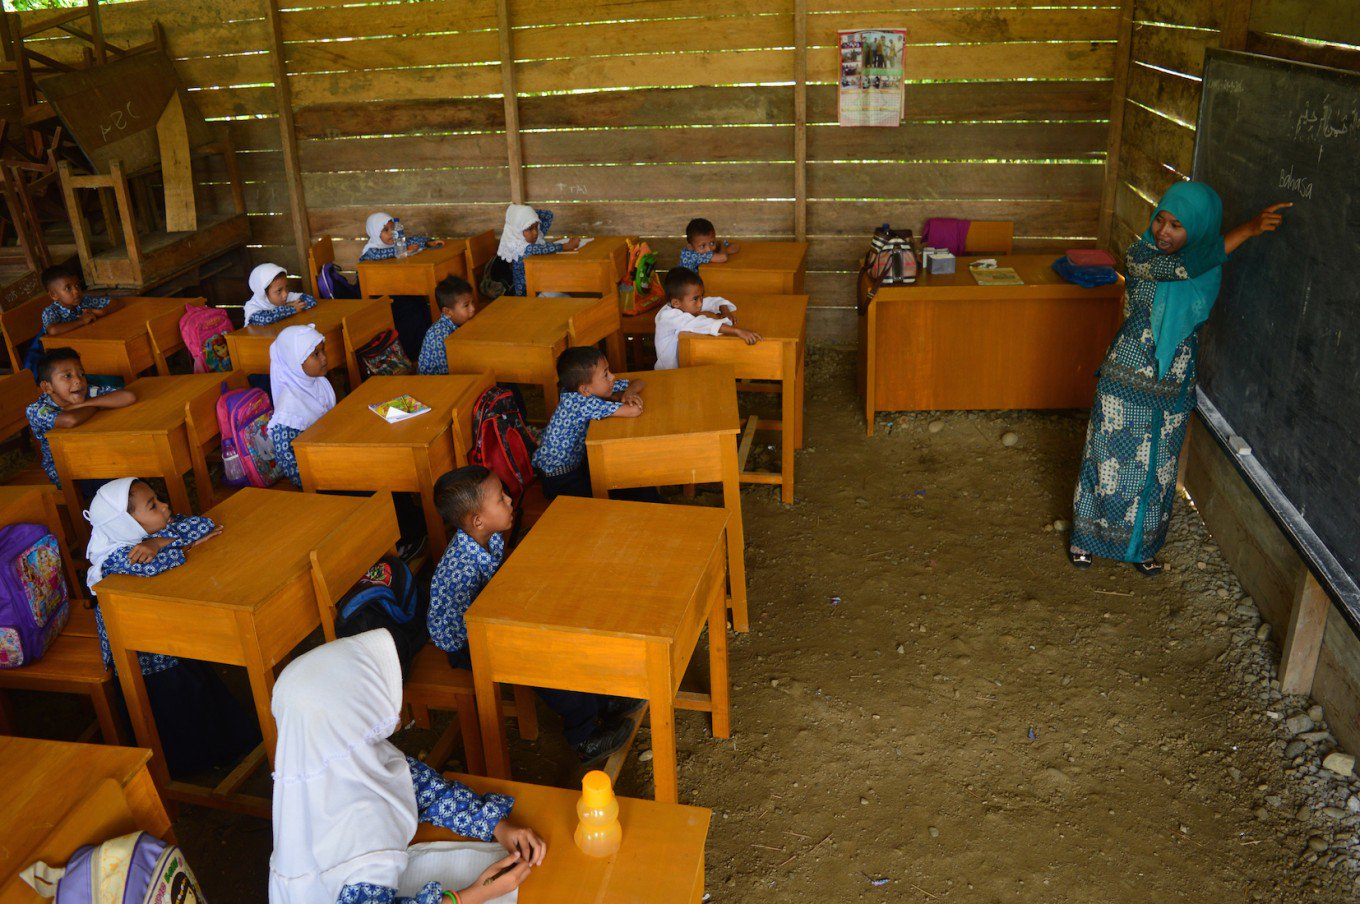 A teacher teaches students of the Islamic primary school Madrasah Ibtidaiyah in Babahrot village, Southwest Aceh, on Sept. 29. (Antara/Suprian)